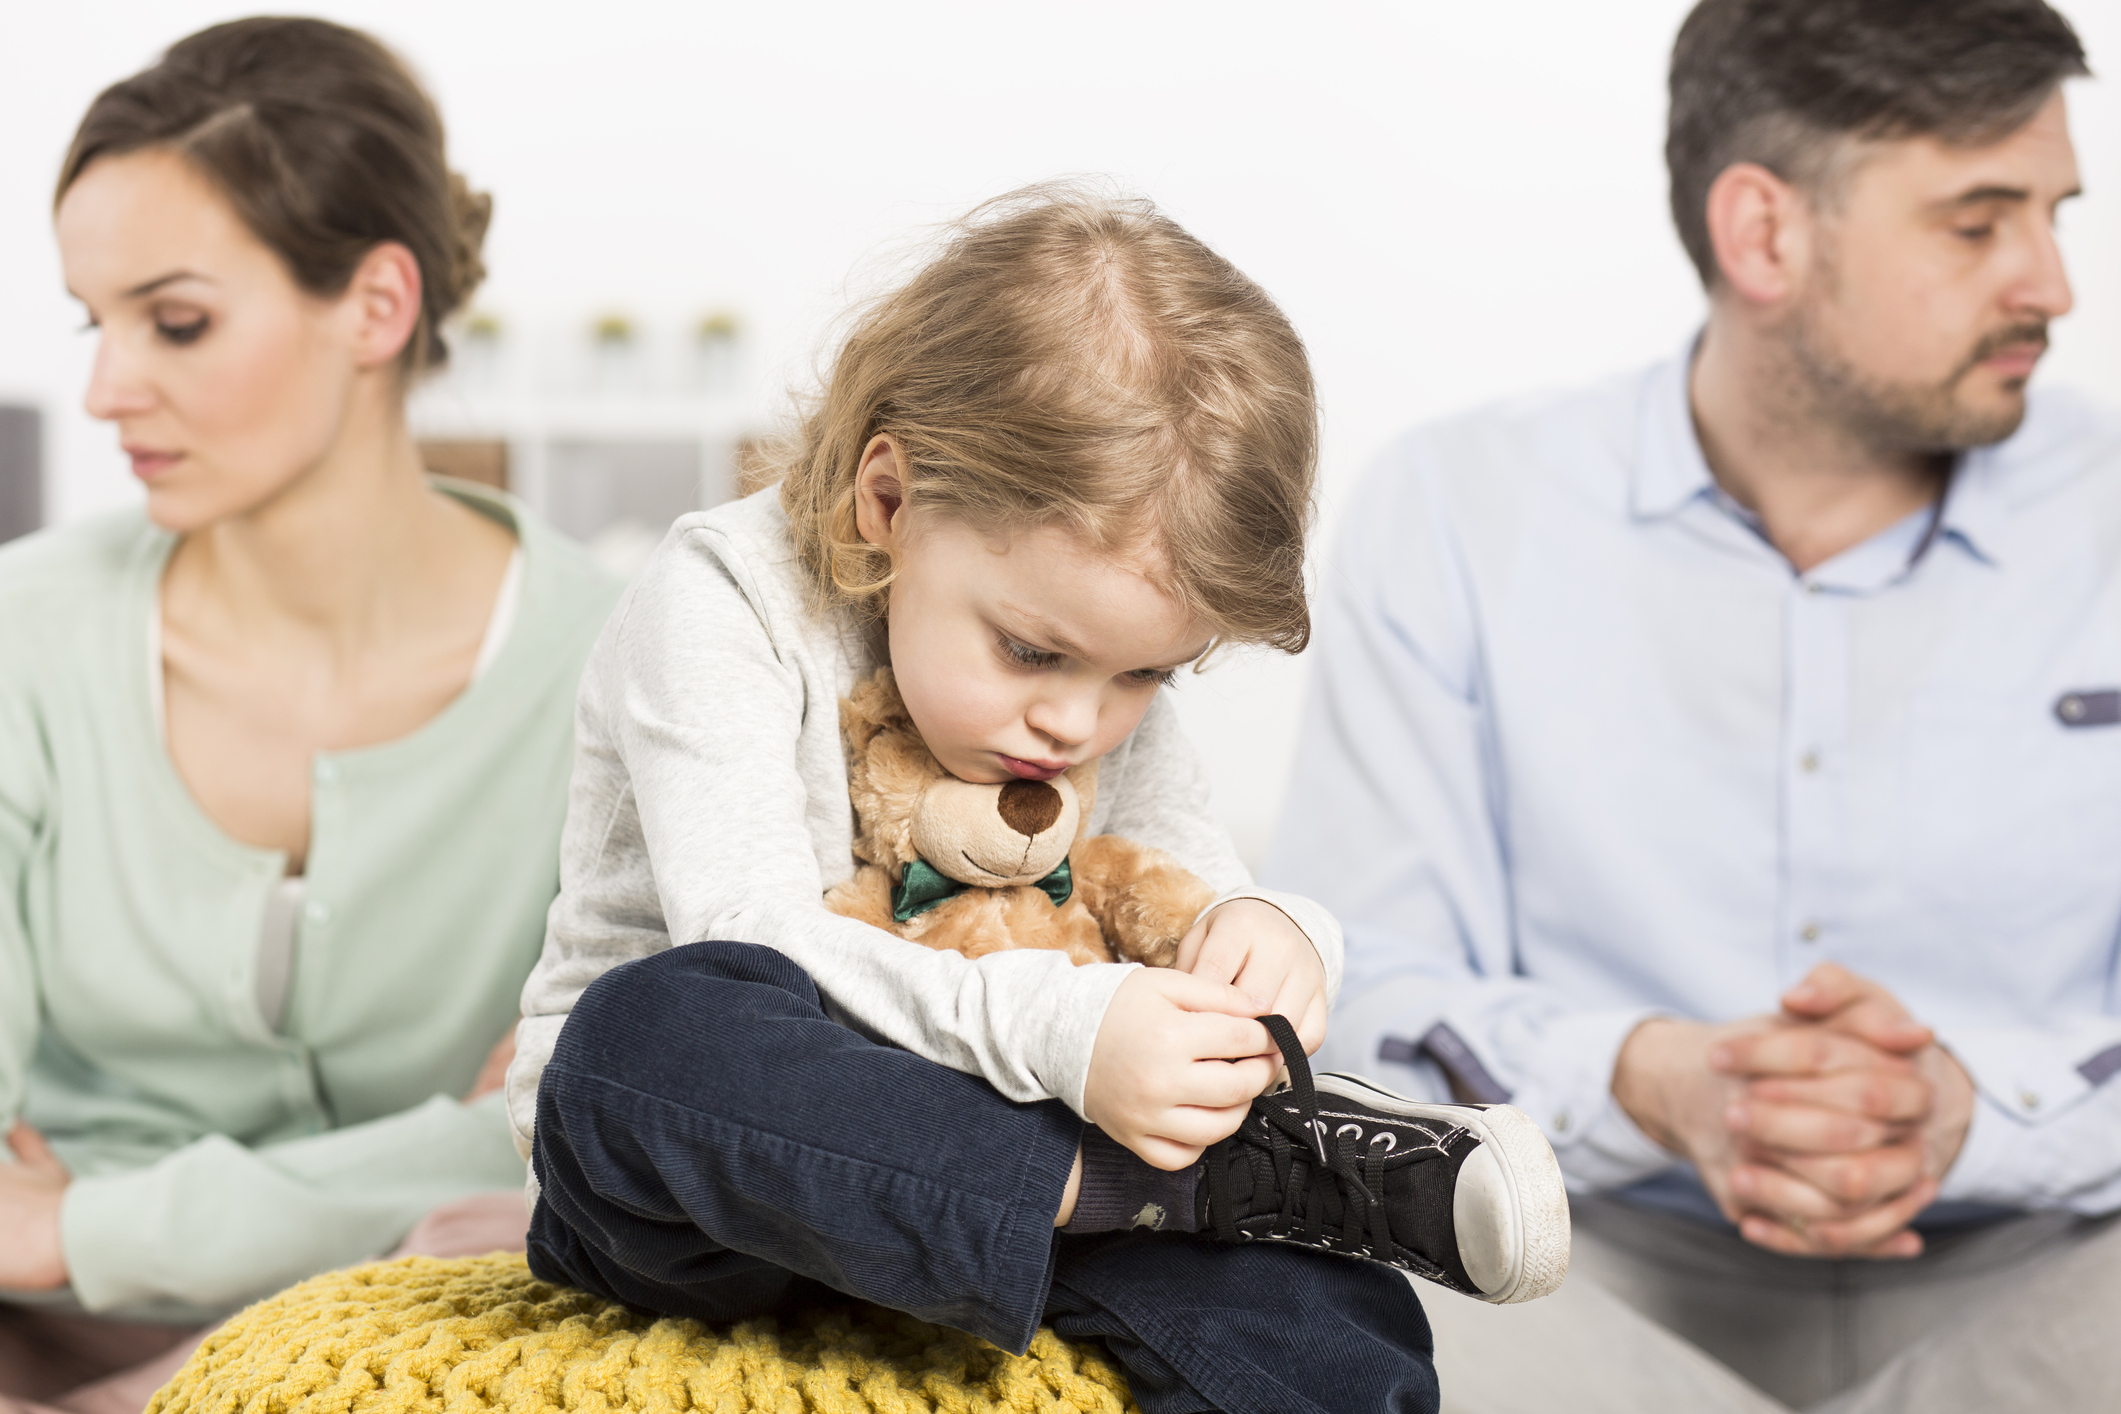 Child Custody  - Studies show that children of divorce suffer long-term irreversible damage when exposed to prolonged conflict during a divorce. If parents can work together (with the help of a trained mediator) to resolve their differences, their children will emerge from the trauma of divorce healthier and happier. The film